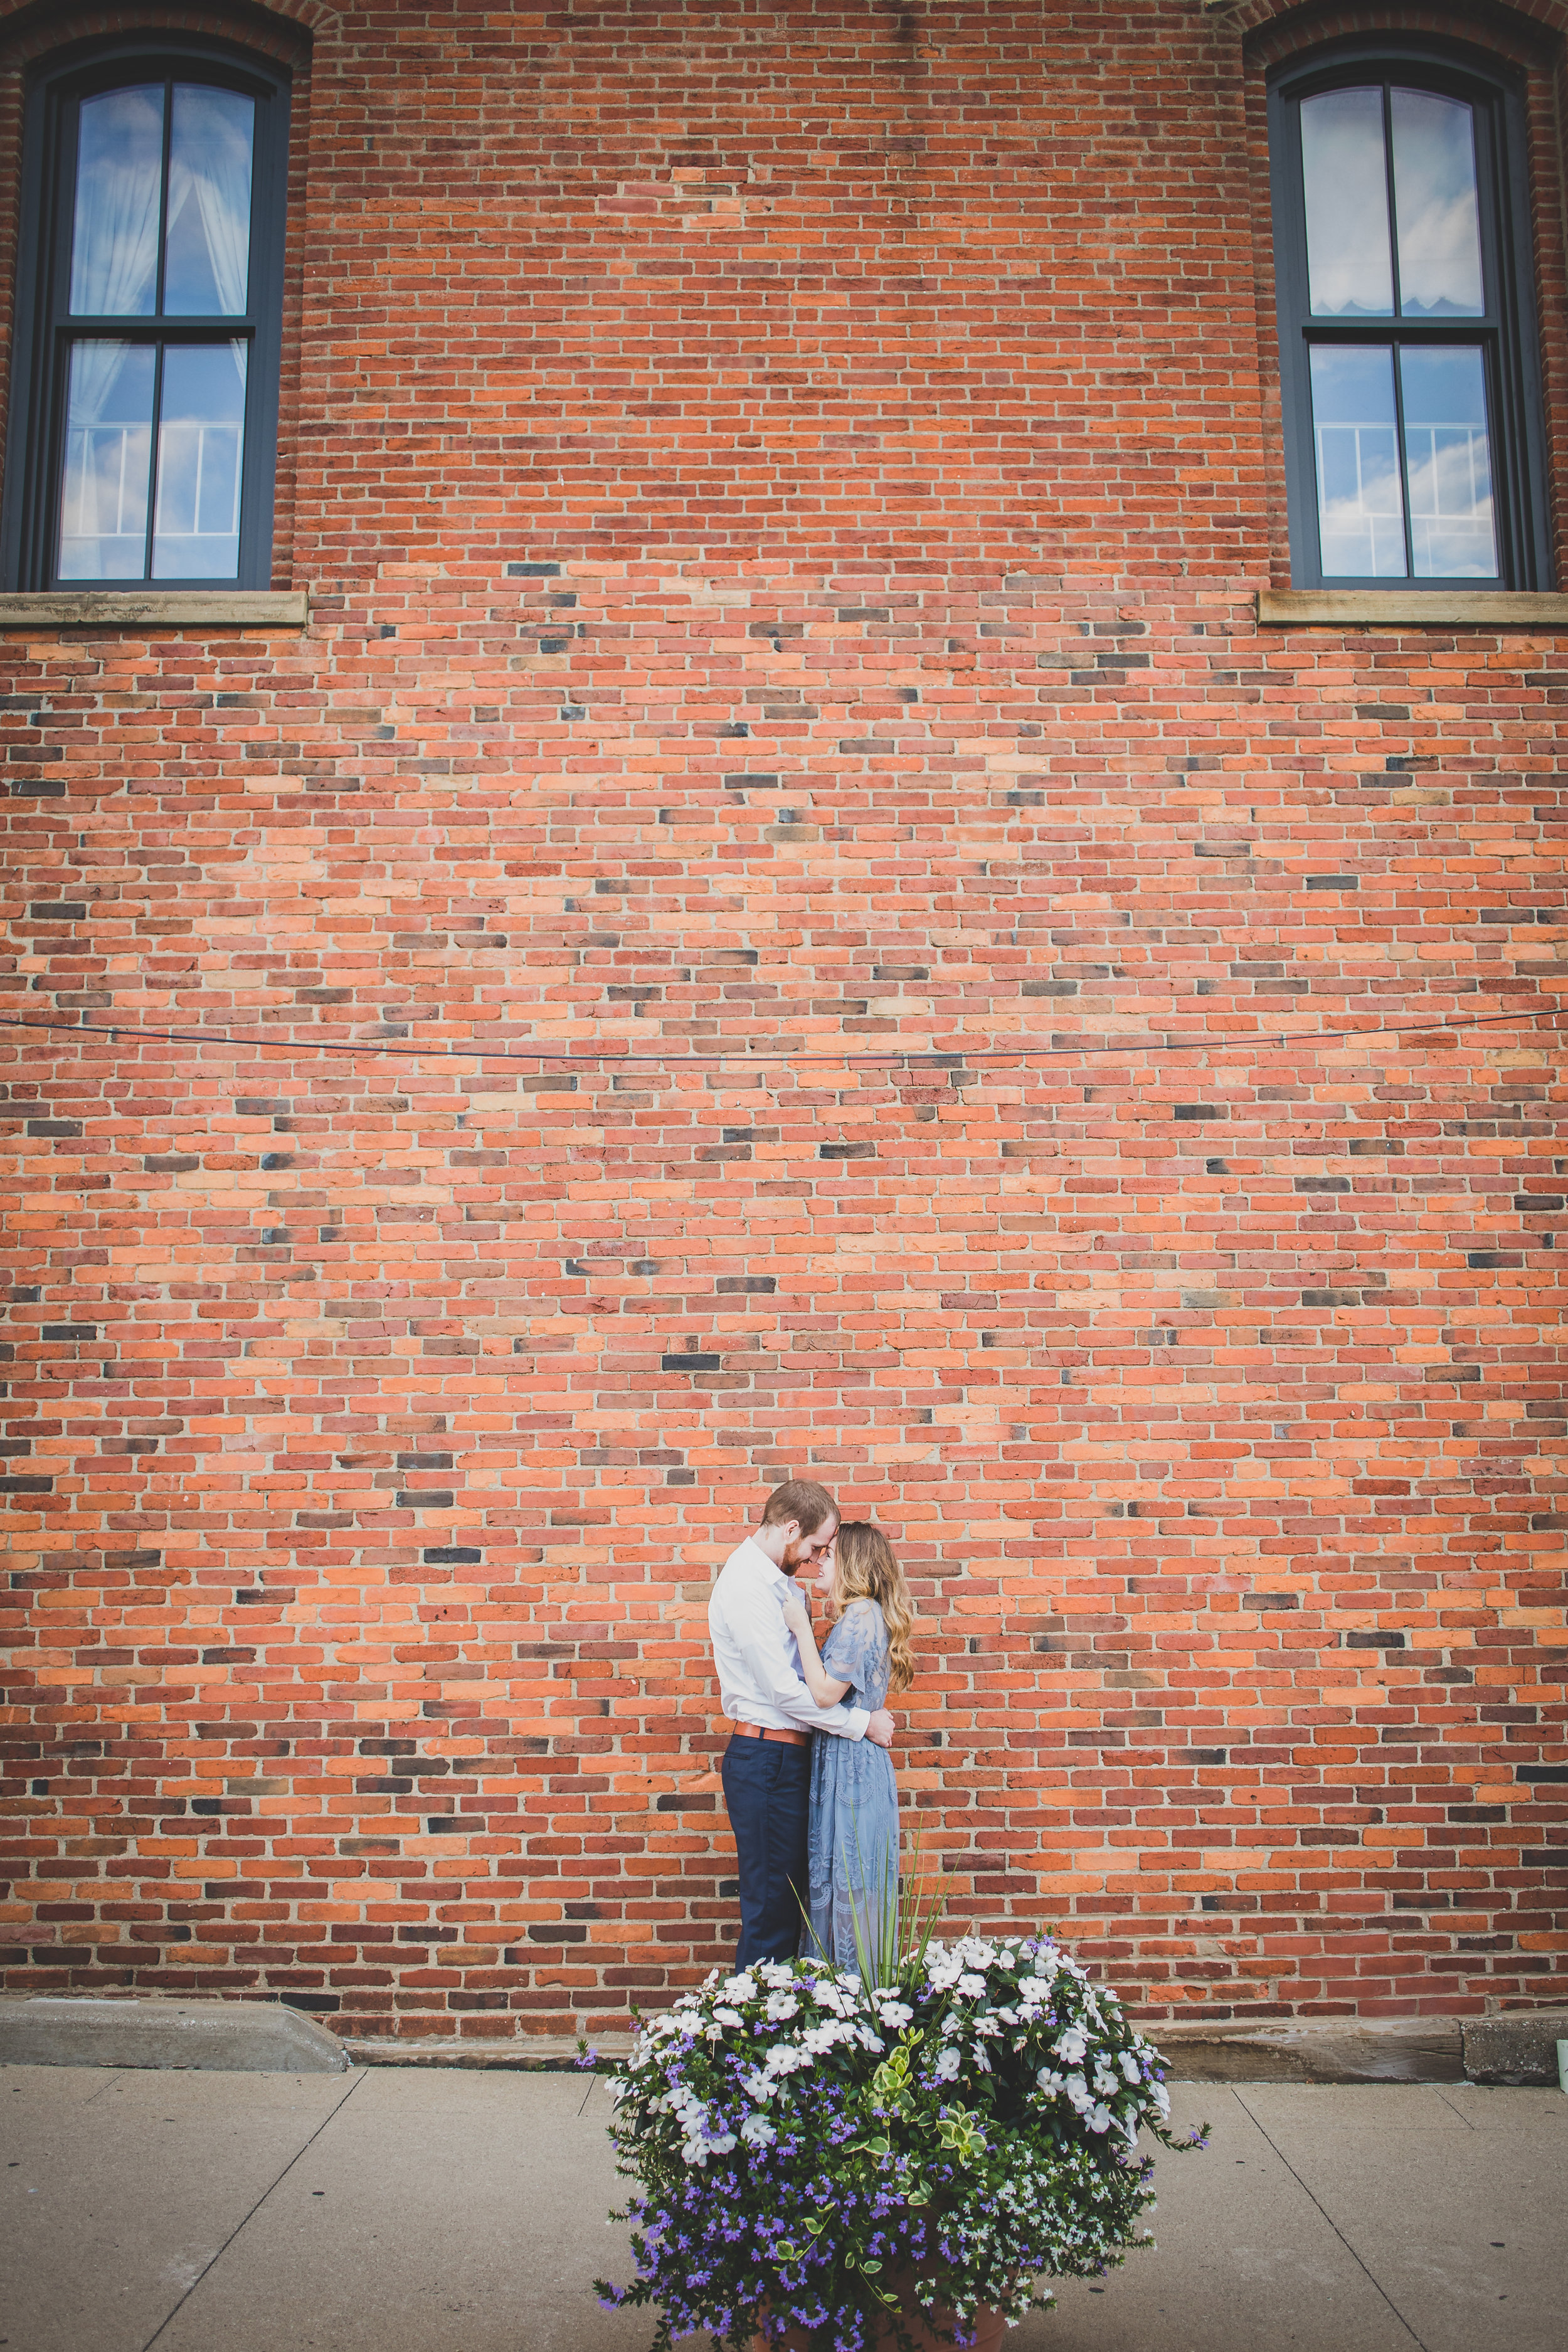 Michelle Carter Photography-Downtown Medina Engagement Session-Brianna and Josh-8.jpg